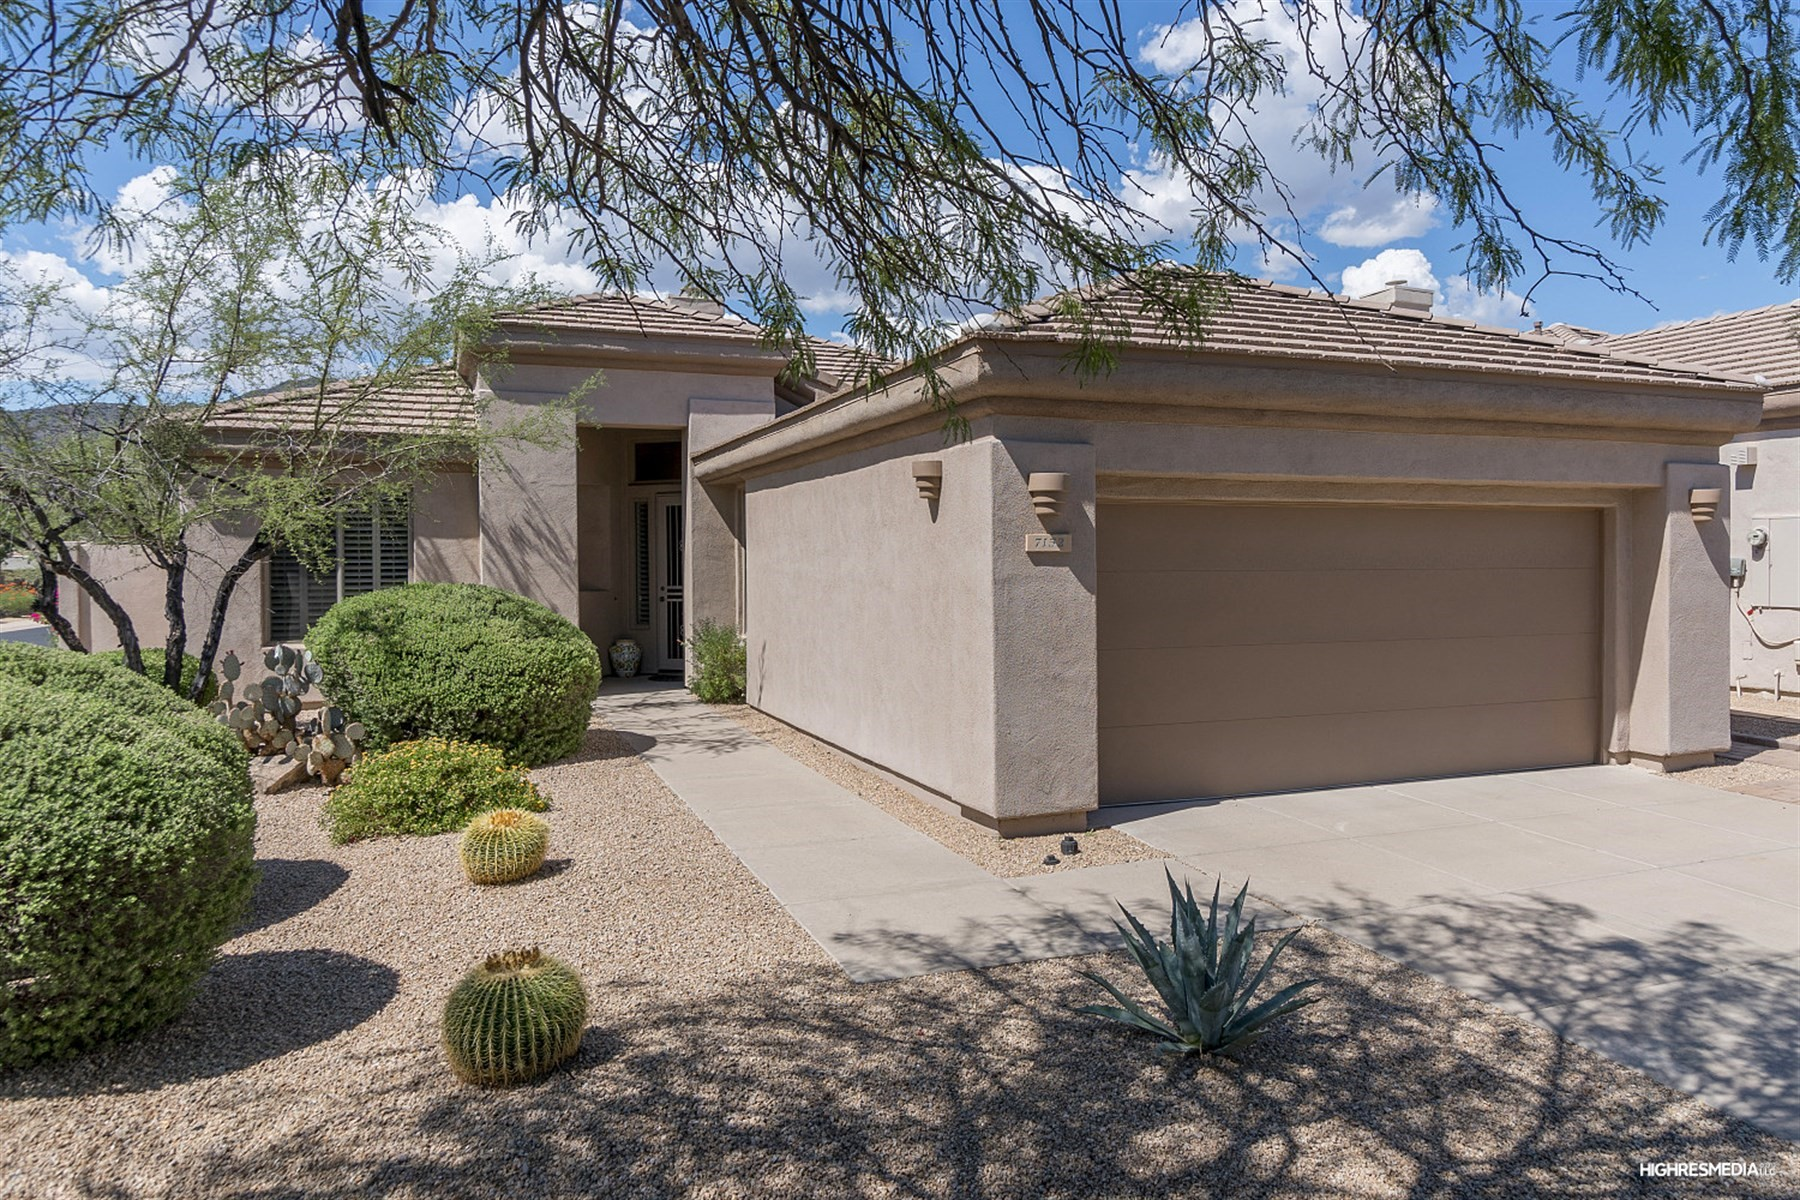 Single Family Home for Sale at Fantastic home in the beautiful community of Terravita 7152 E Canyon Wren Cir Scottsdale, Arizona, 85266 United States